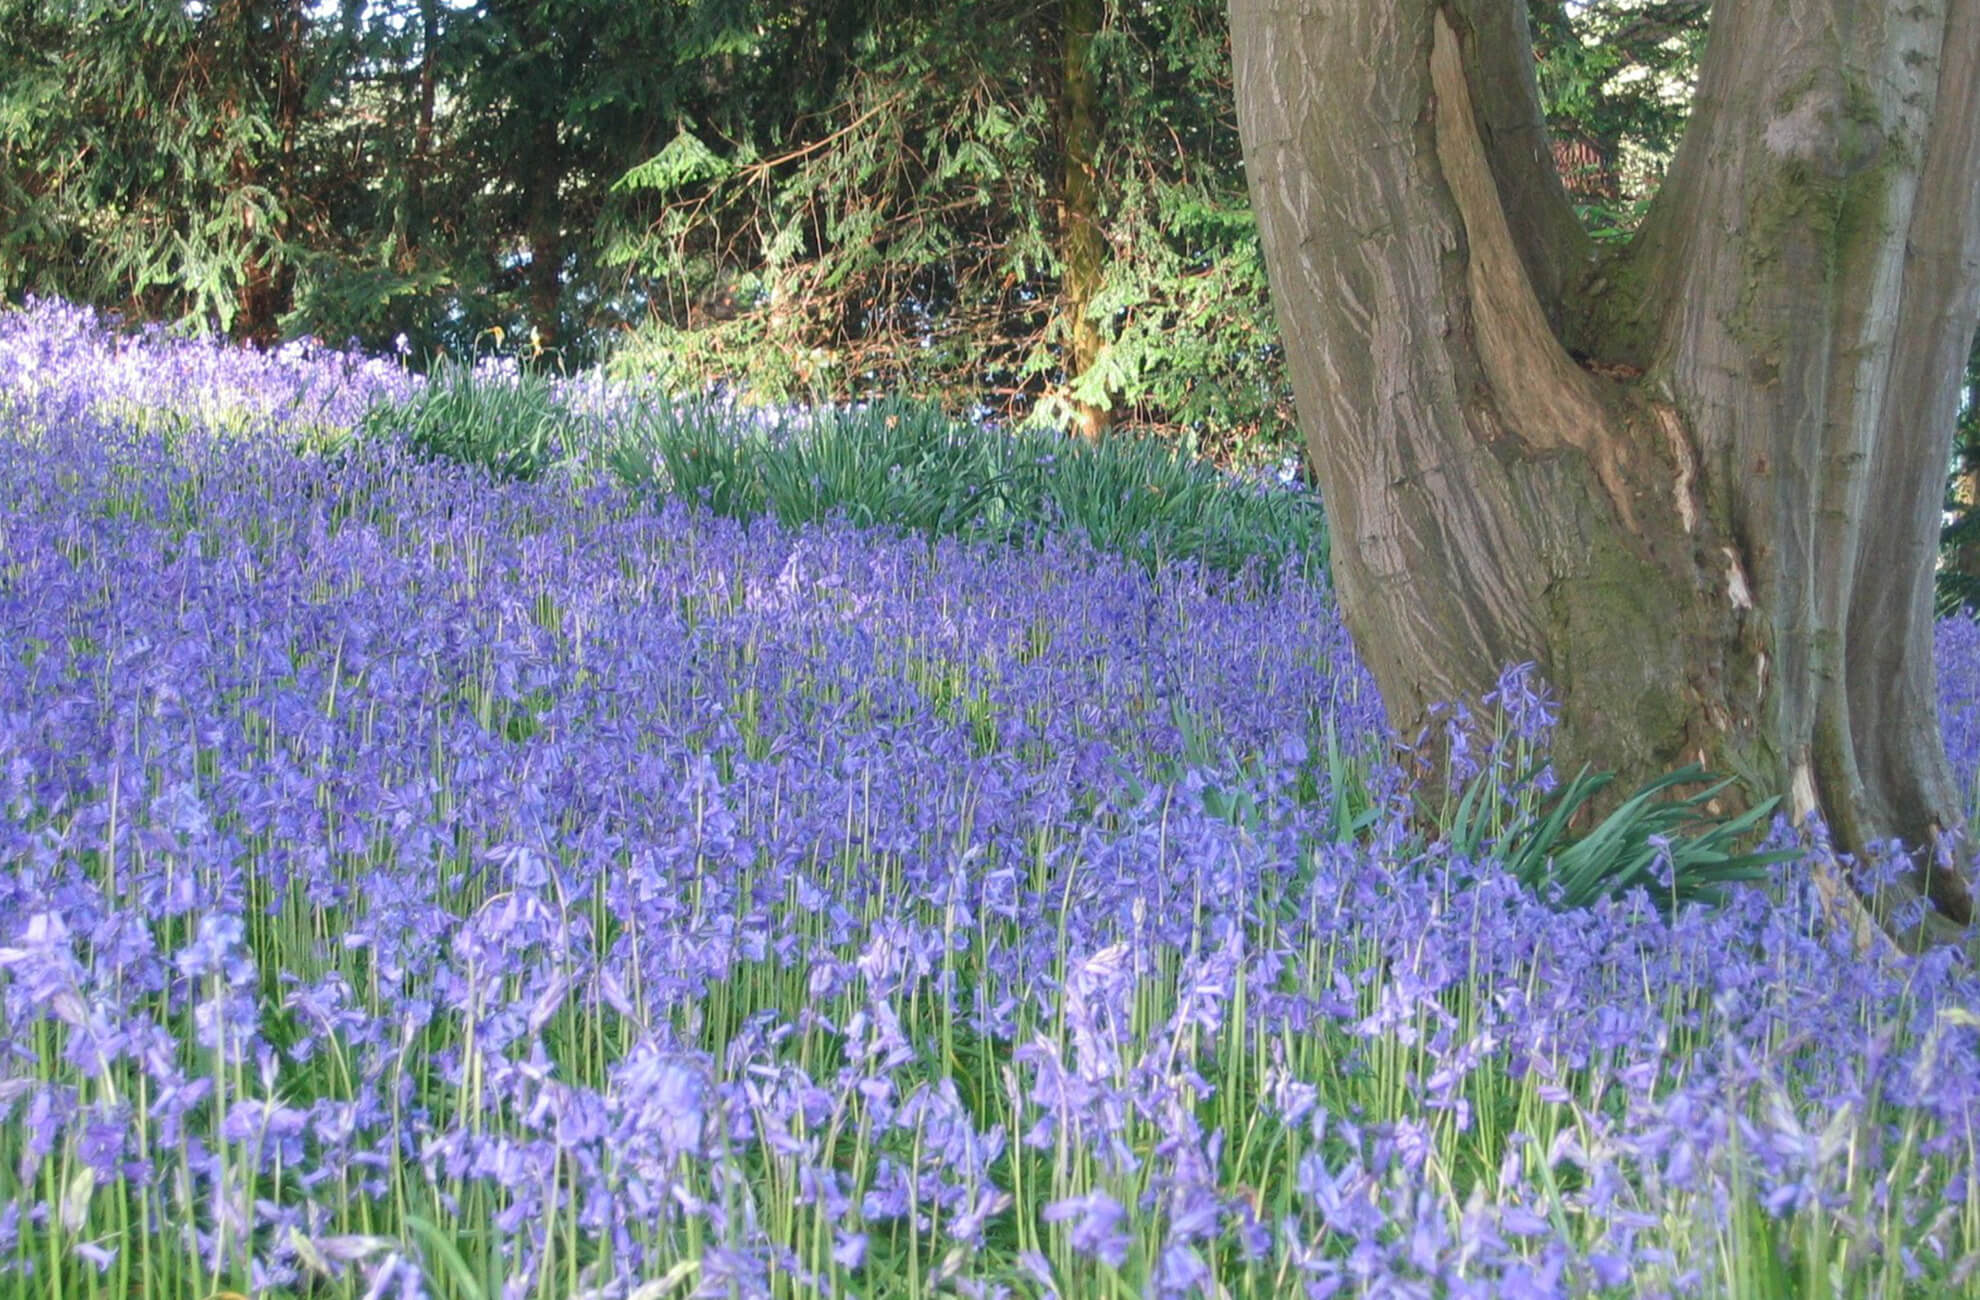 The woodland floor at Combermere Abbey is covered in a beautiful carpet of bluebells